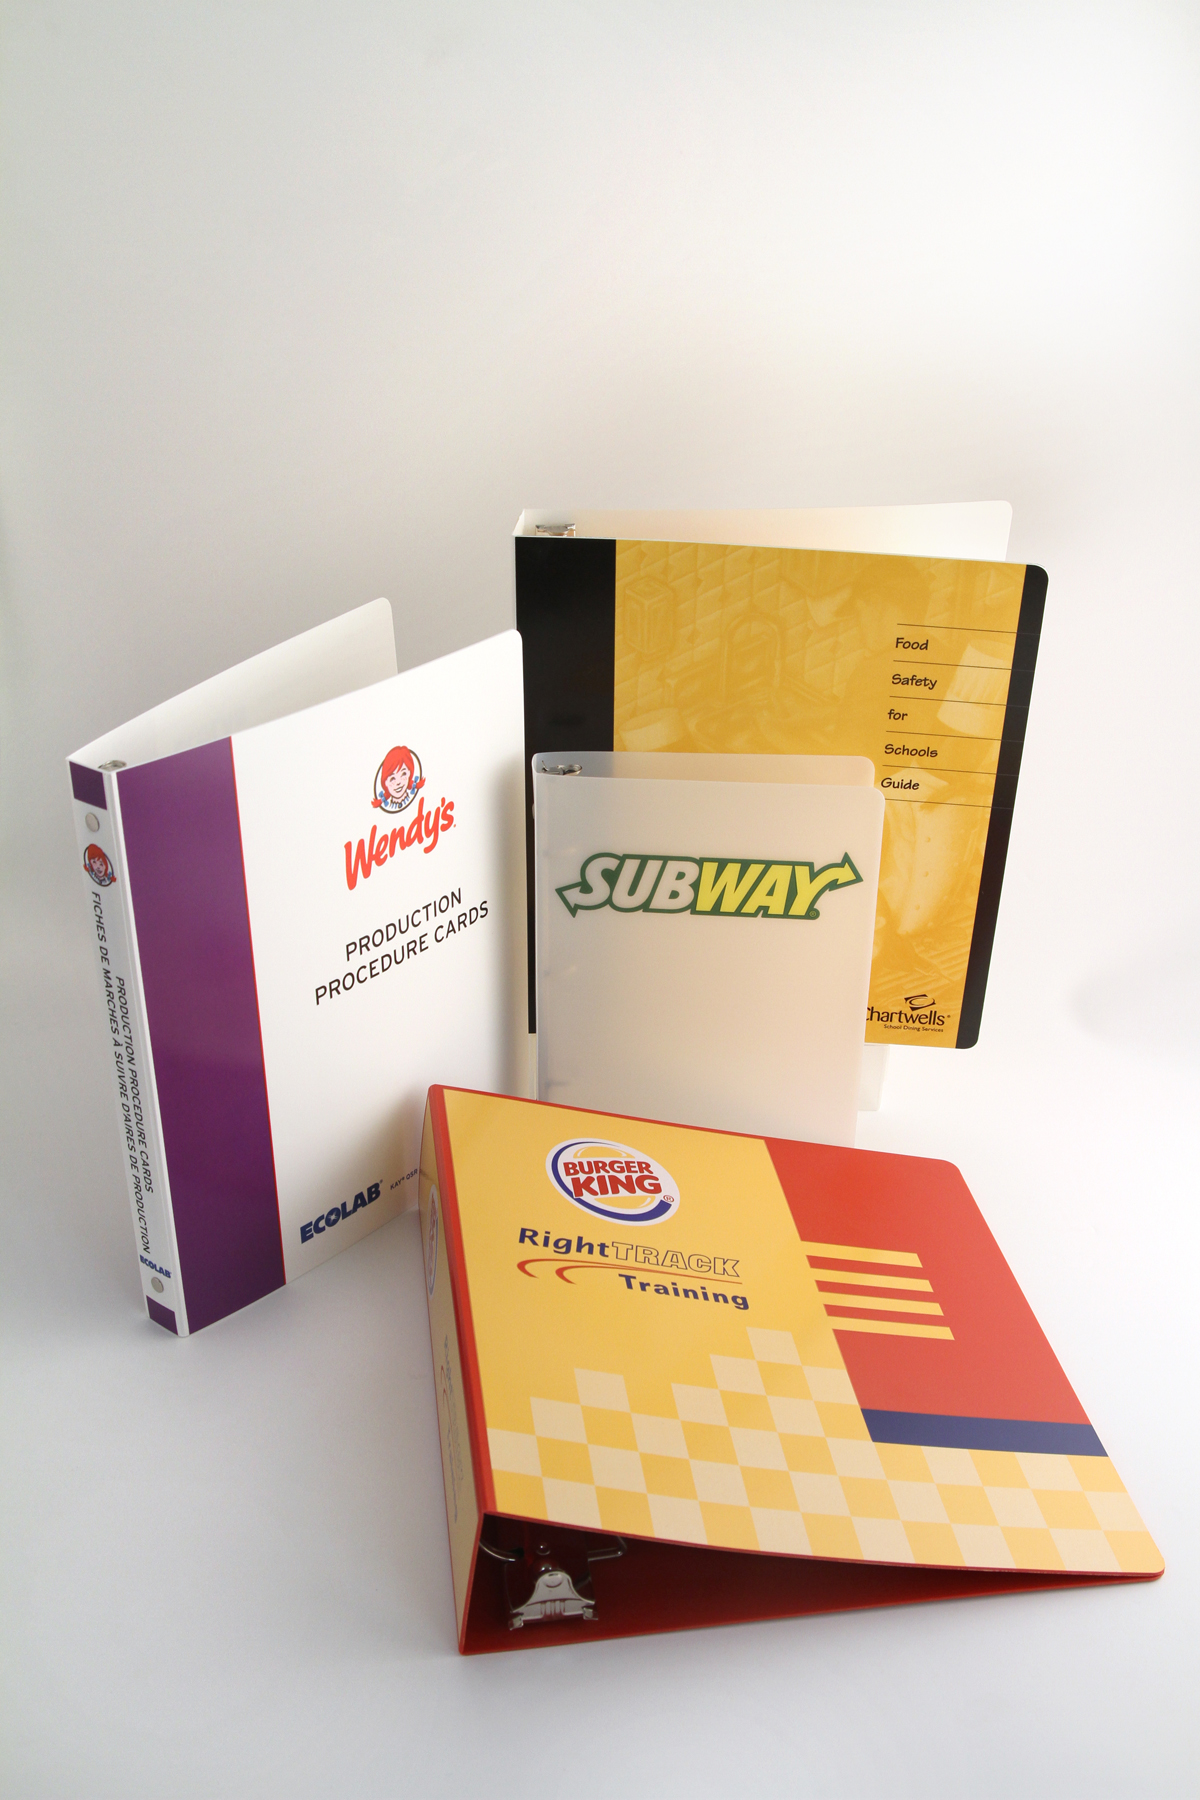 Food Safety, Operations & Training Manuals